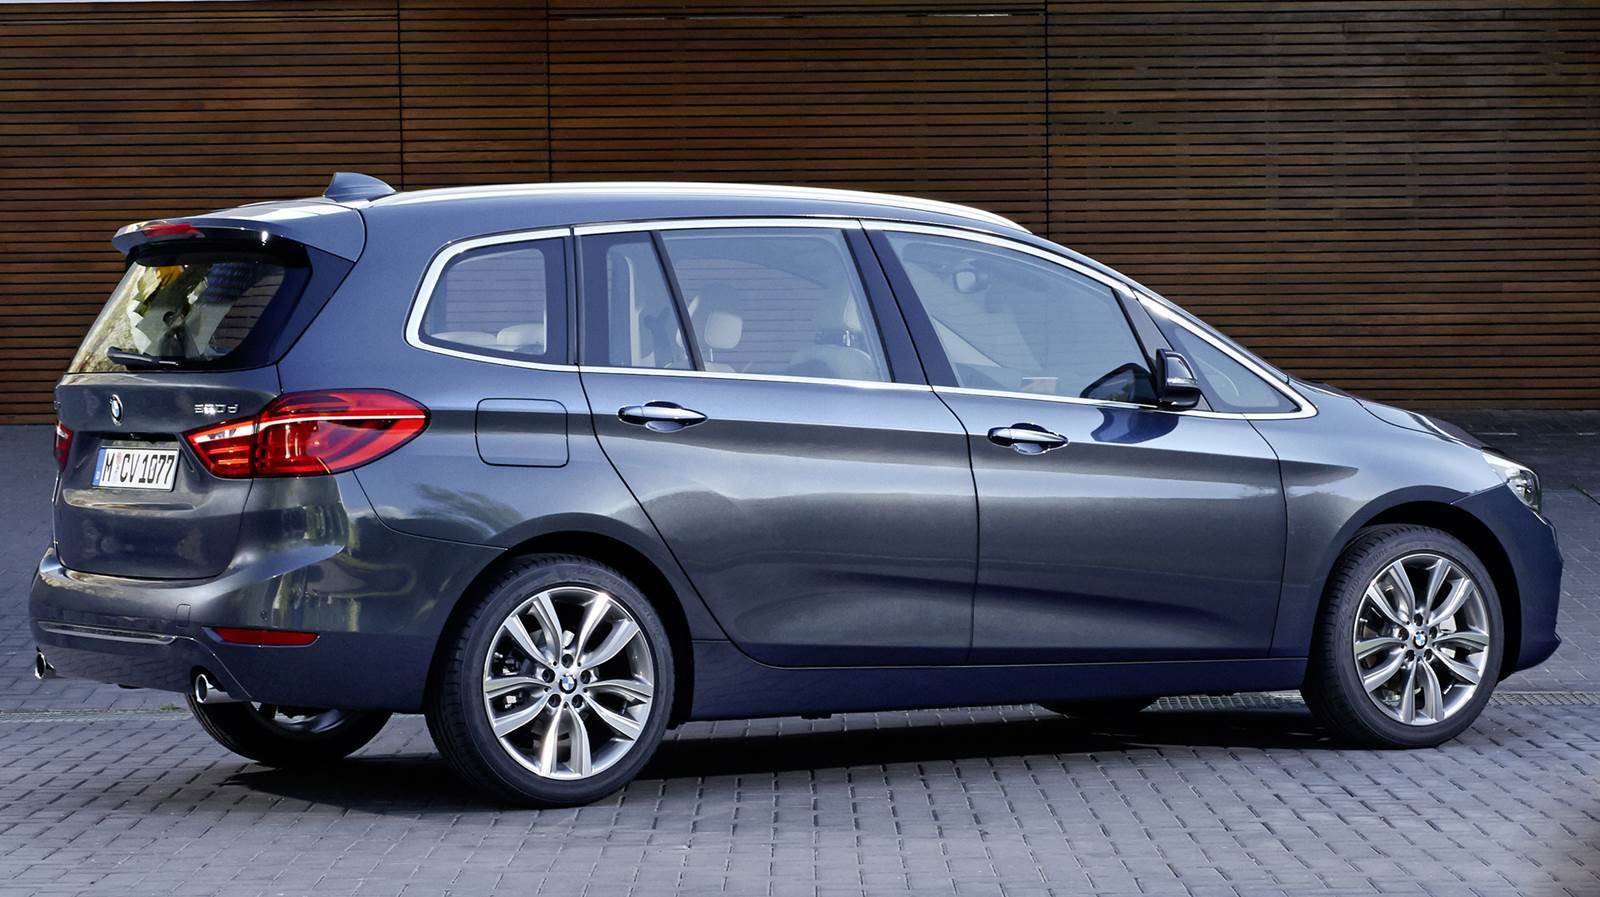 bmw s rie 2 gran tourer fotos v deo e especifica es car blog br. Black Bedroom Furniture Sets. Home Design Ideas